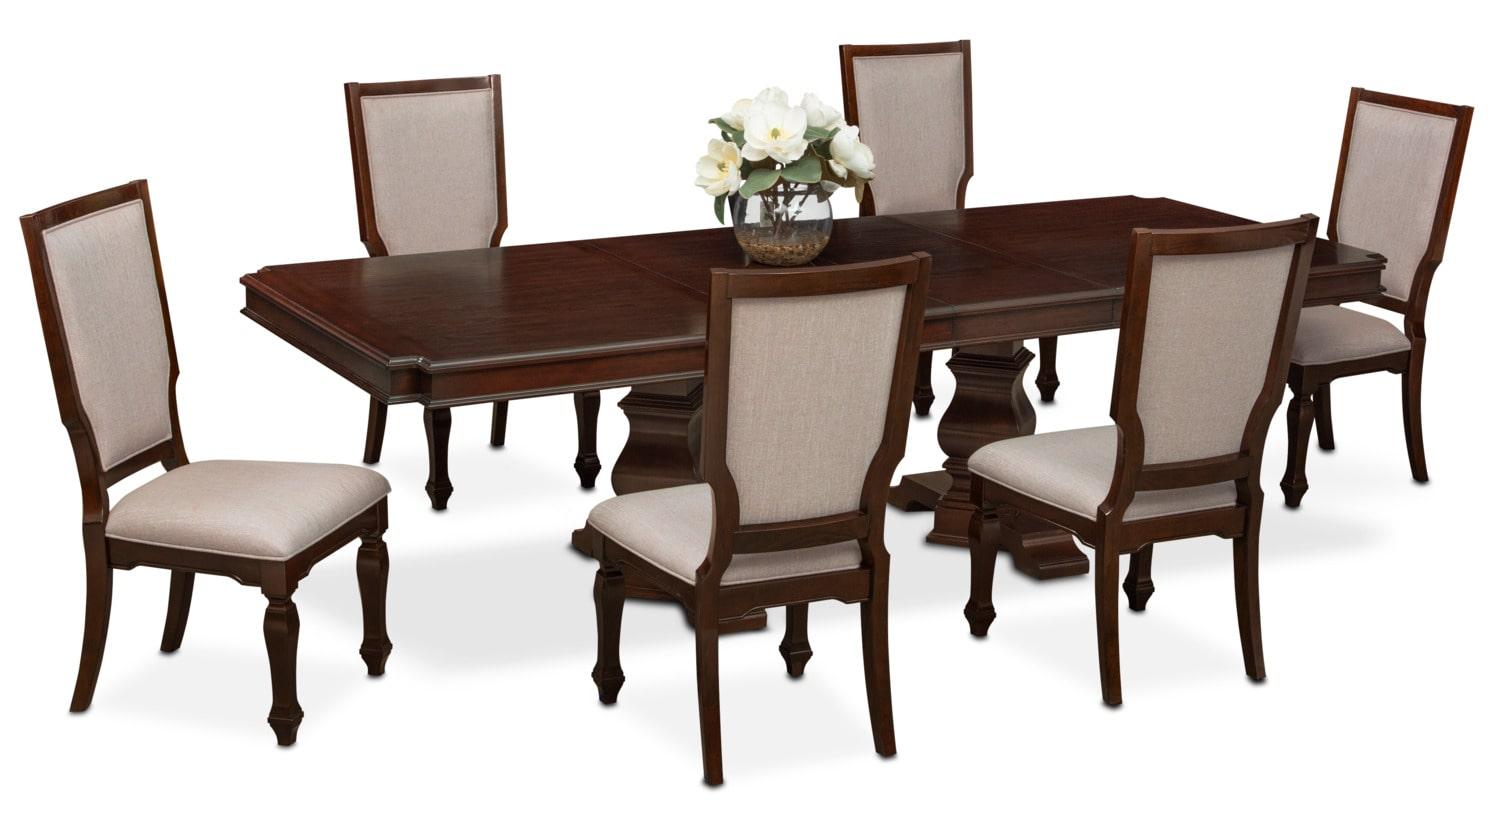 Vienna Dining Table And 6 Upholstered Side Chairs   Merlot Part 85